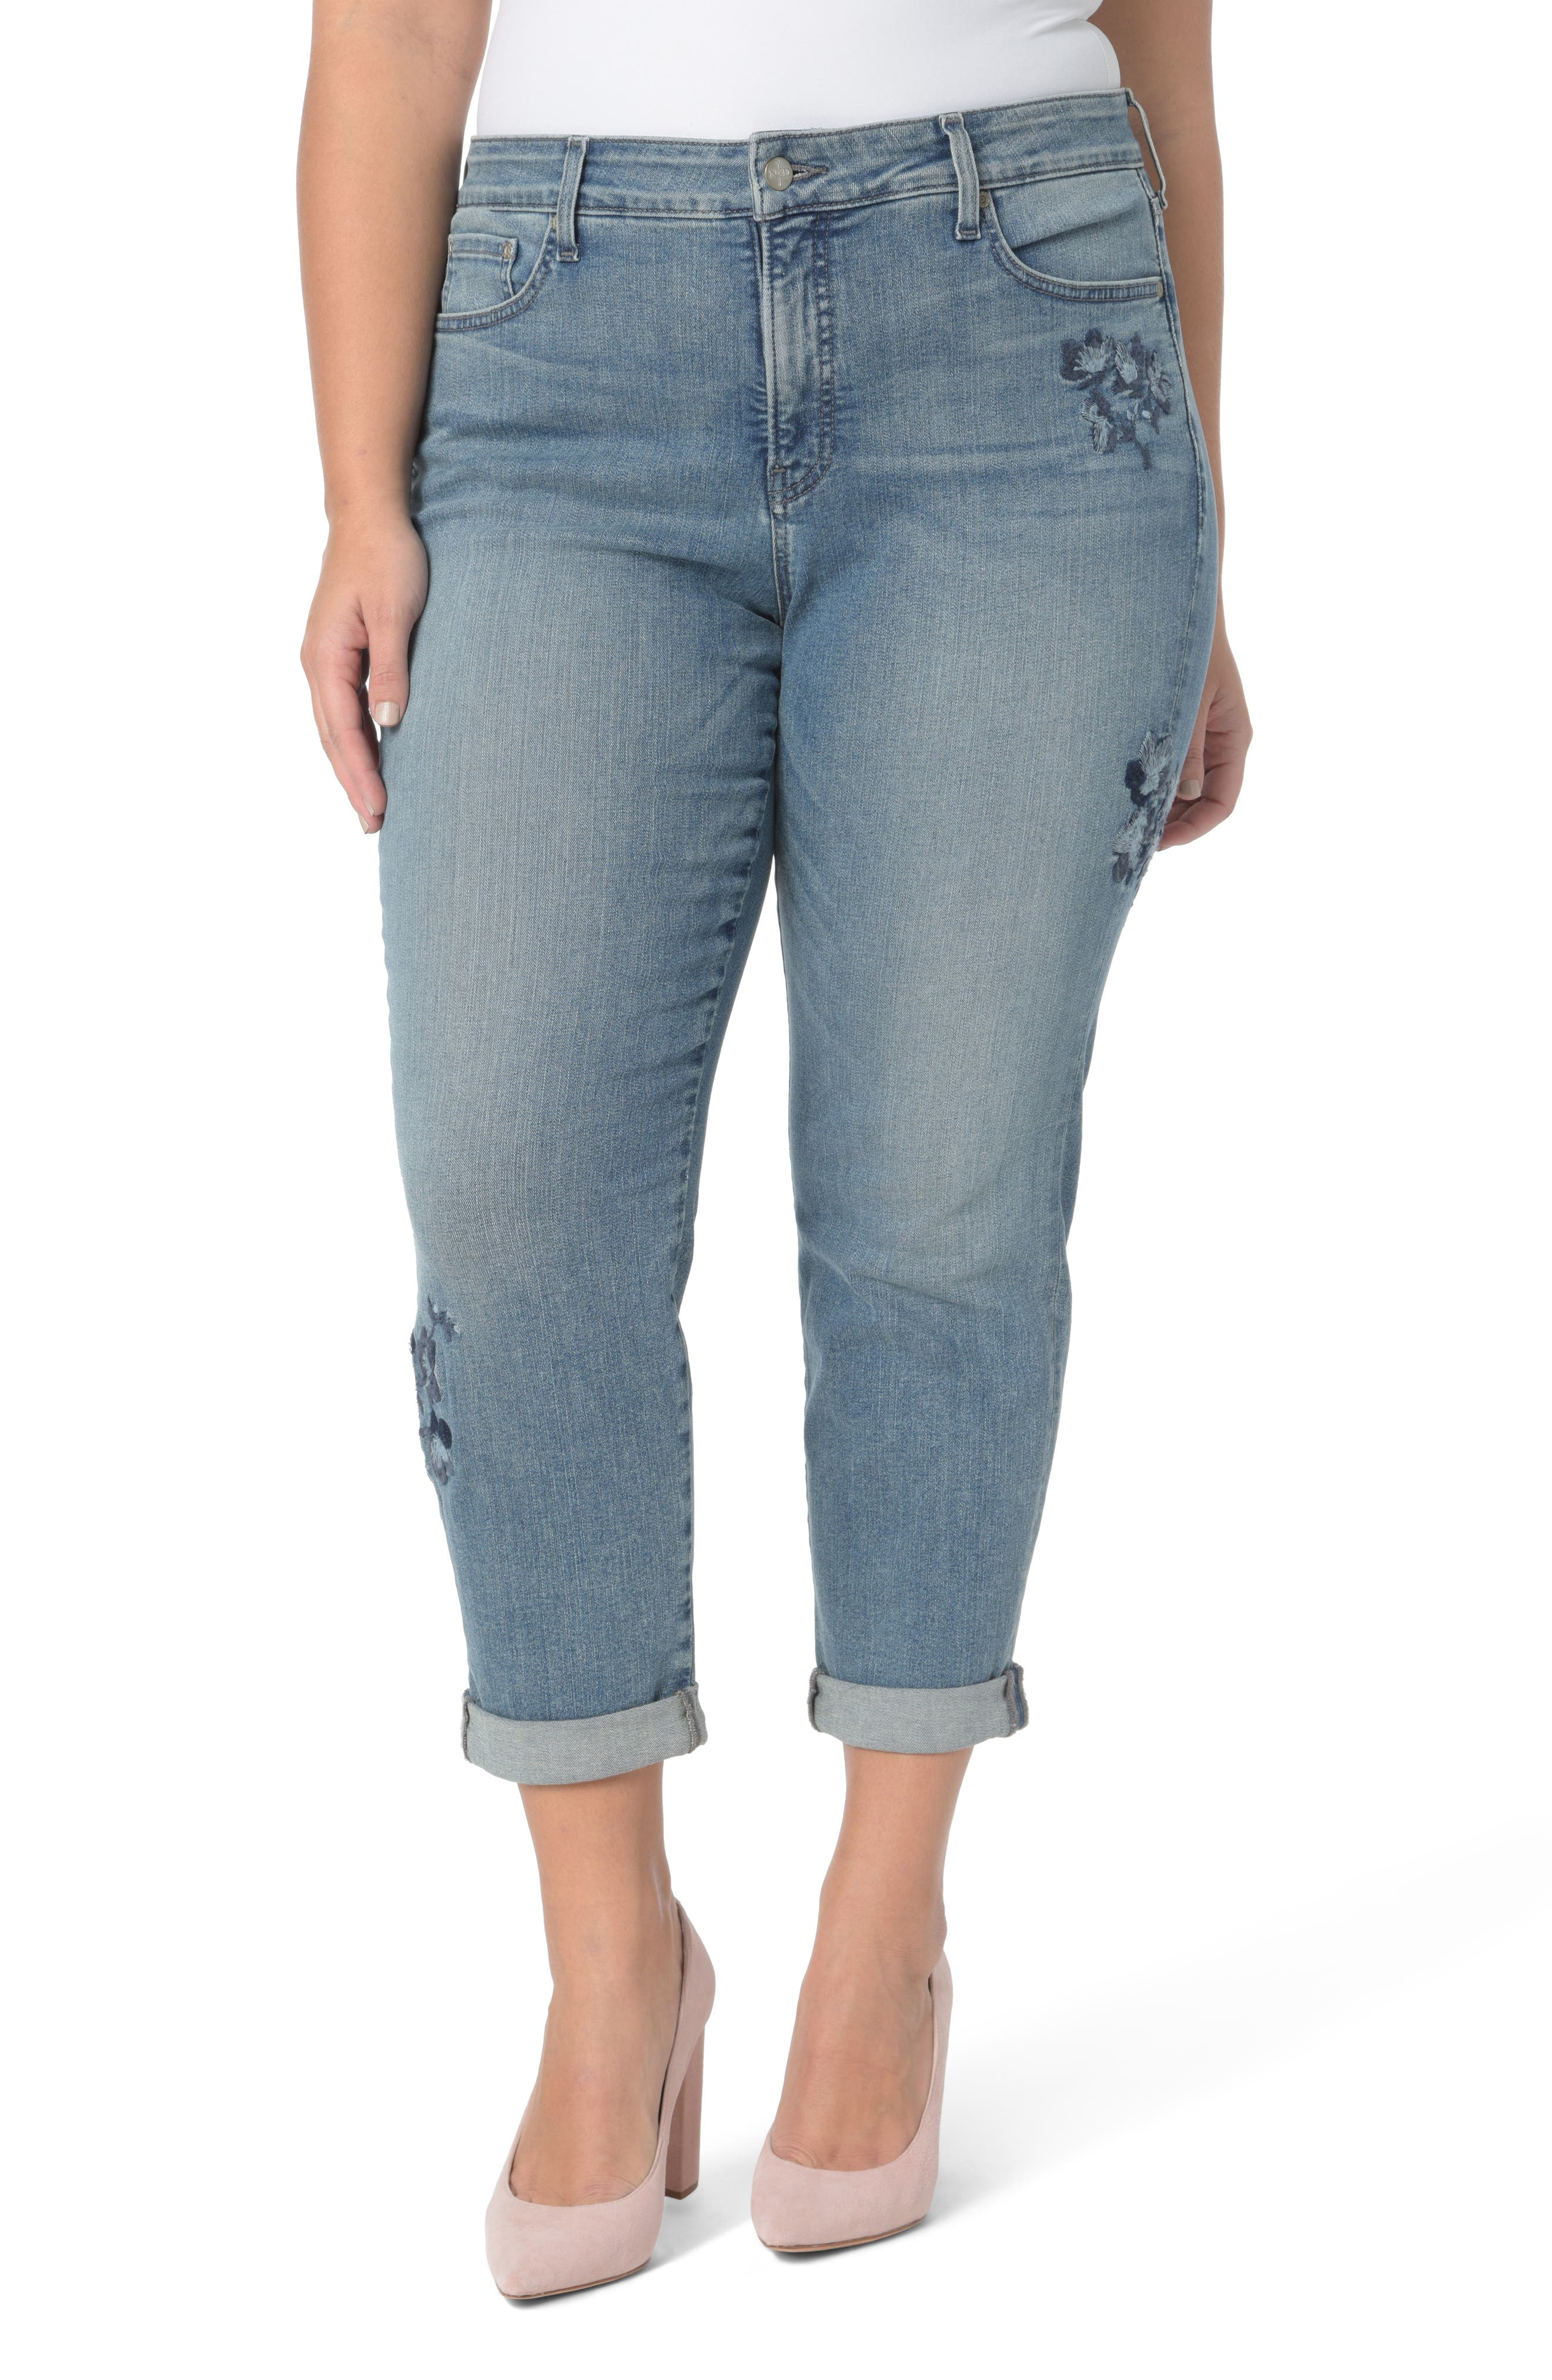 NYDJ Floral Embroidery Boyfriend Jeans (Pacific) (Plus Size)